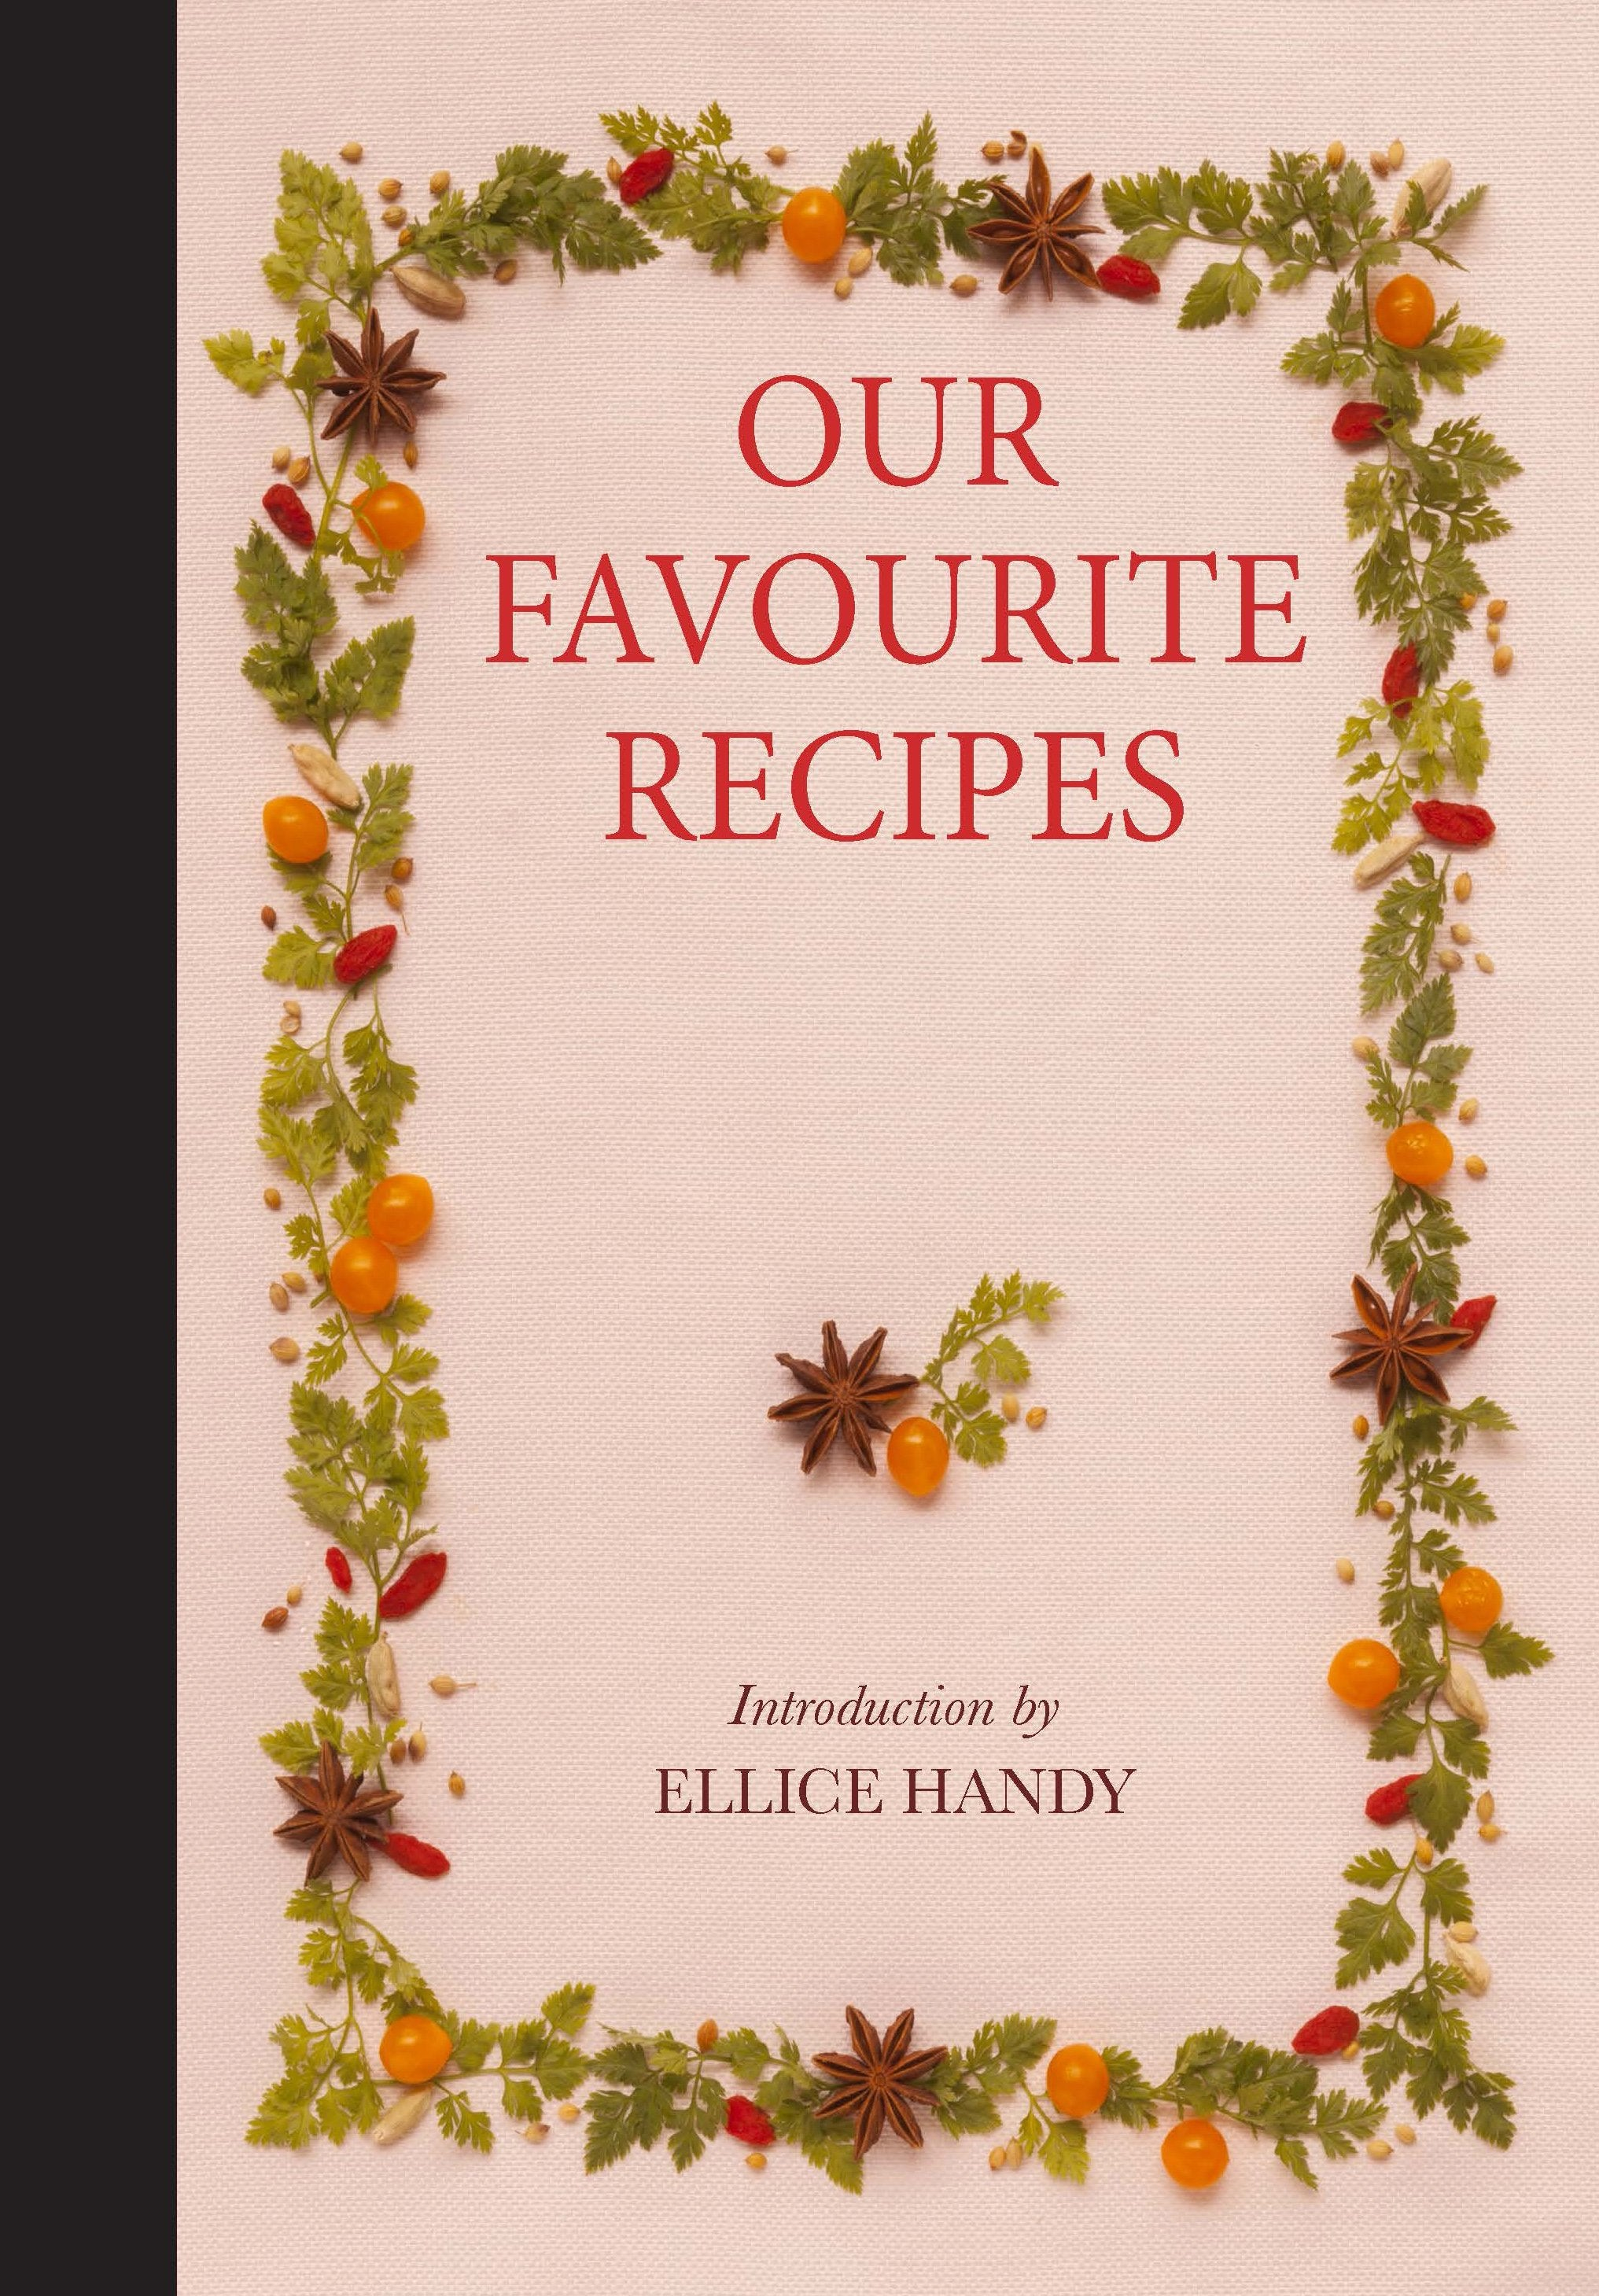 Our Favourite Recipes